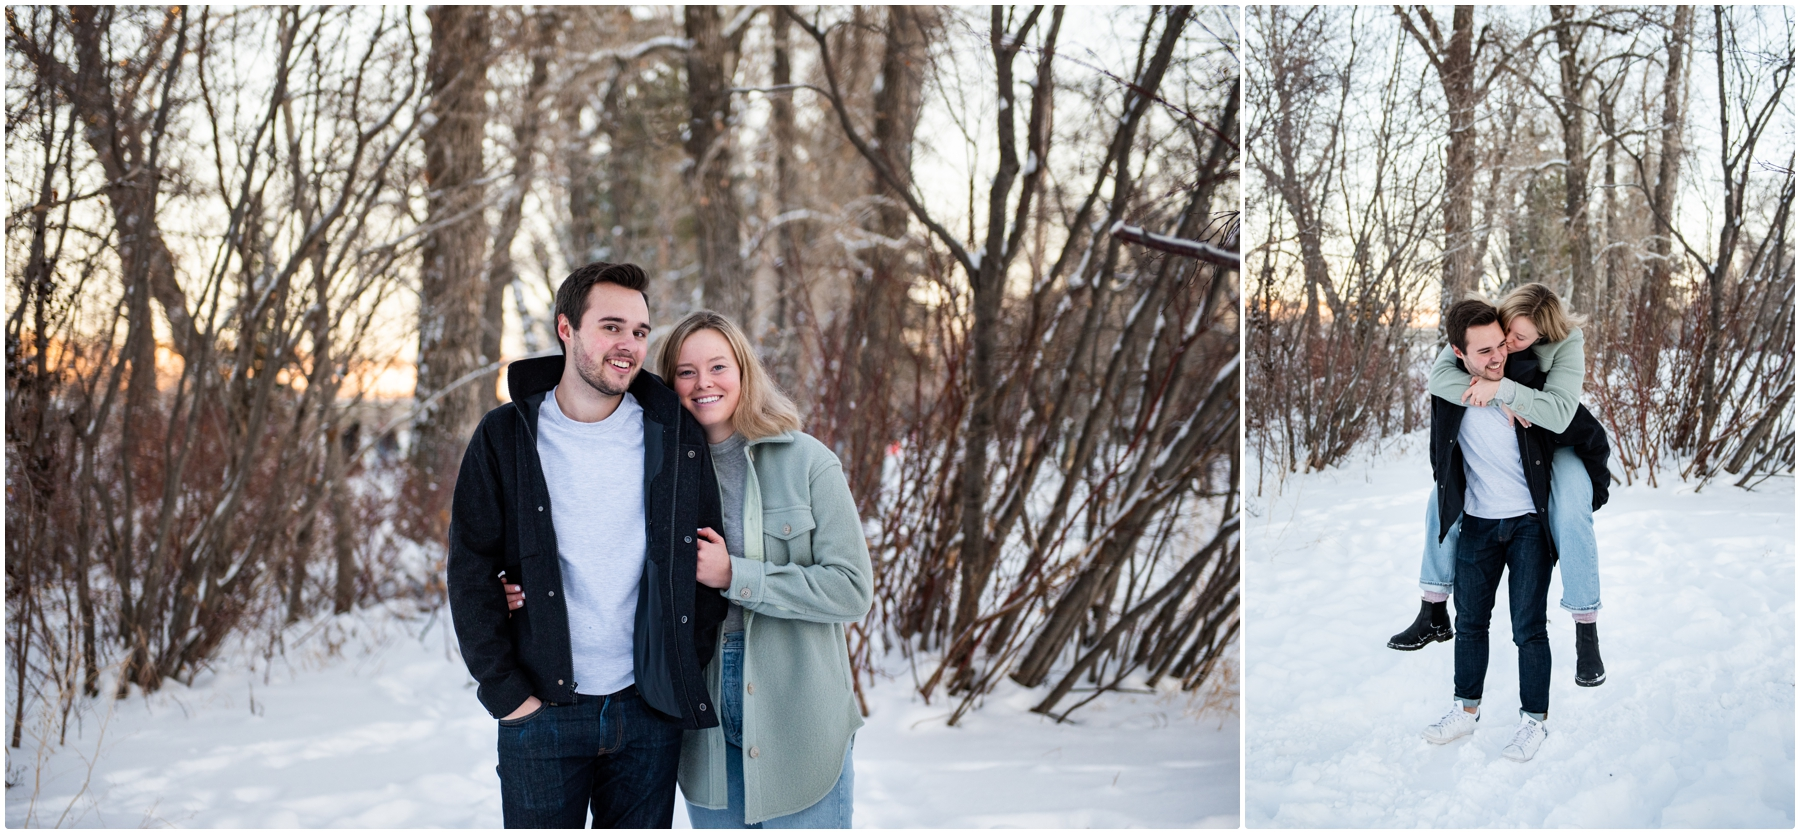 Calgary Bowness Park Skating Engagement Photography